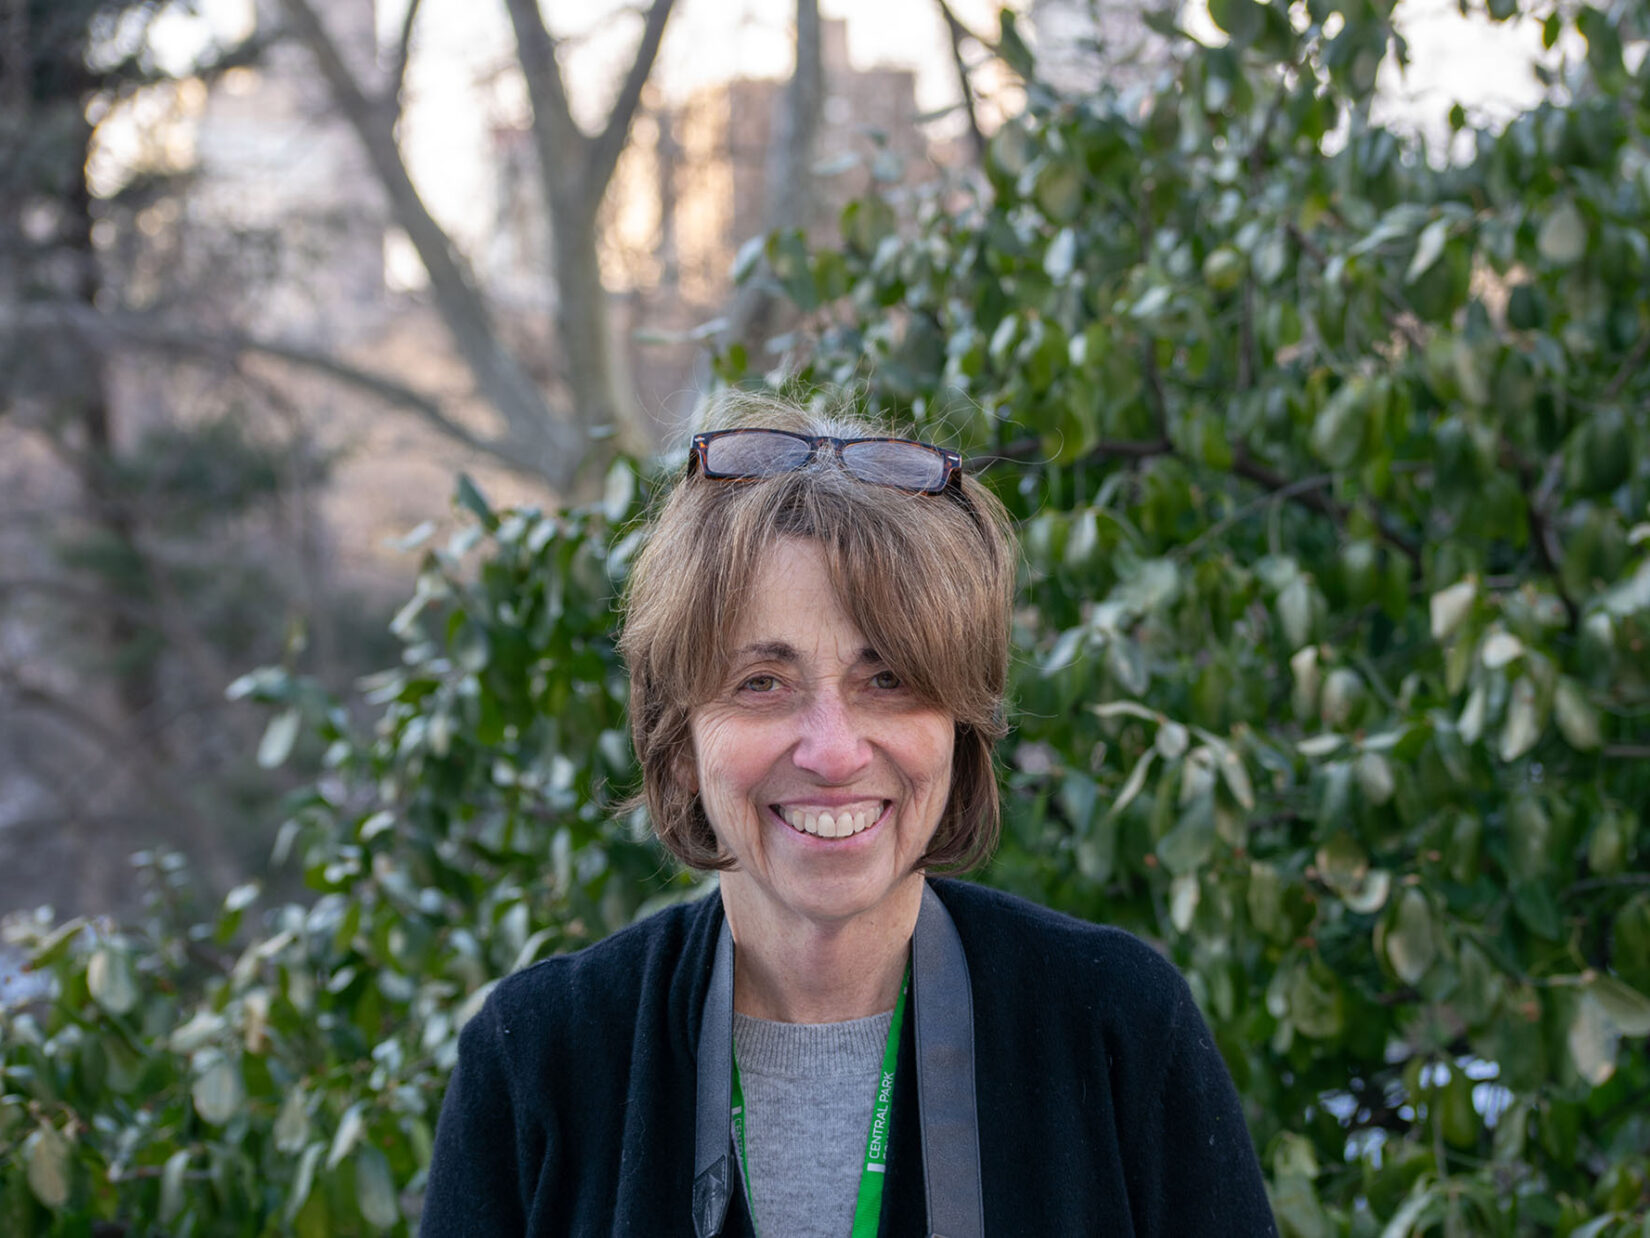 Portrait image of Sara Cedar Miller, seen in front of Park greenery